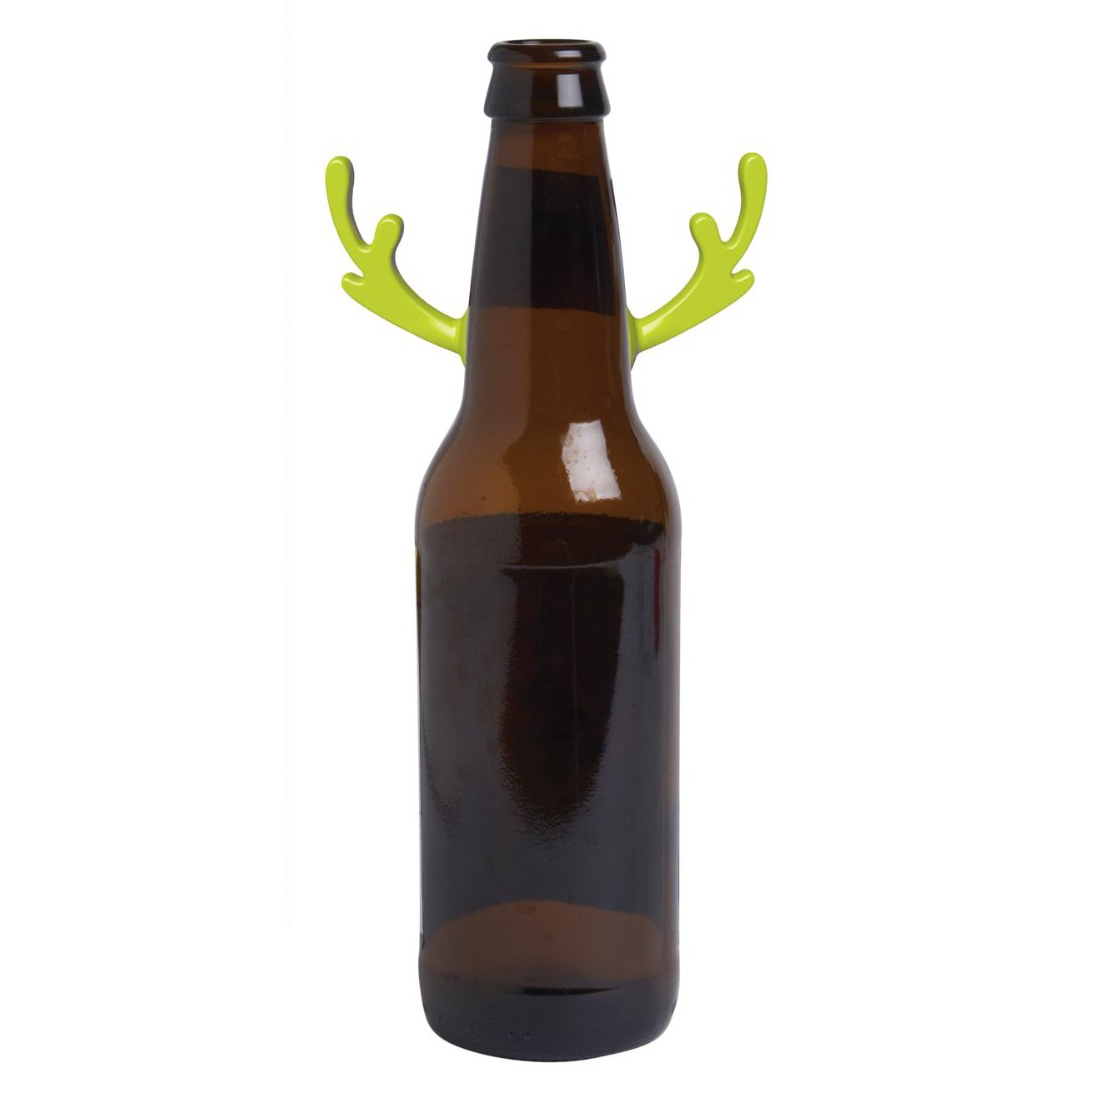 Festive Antler Drink Markers And Party Picks The Green Head